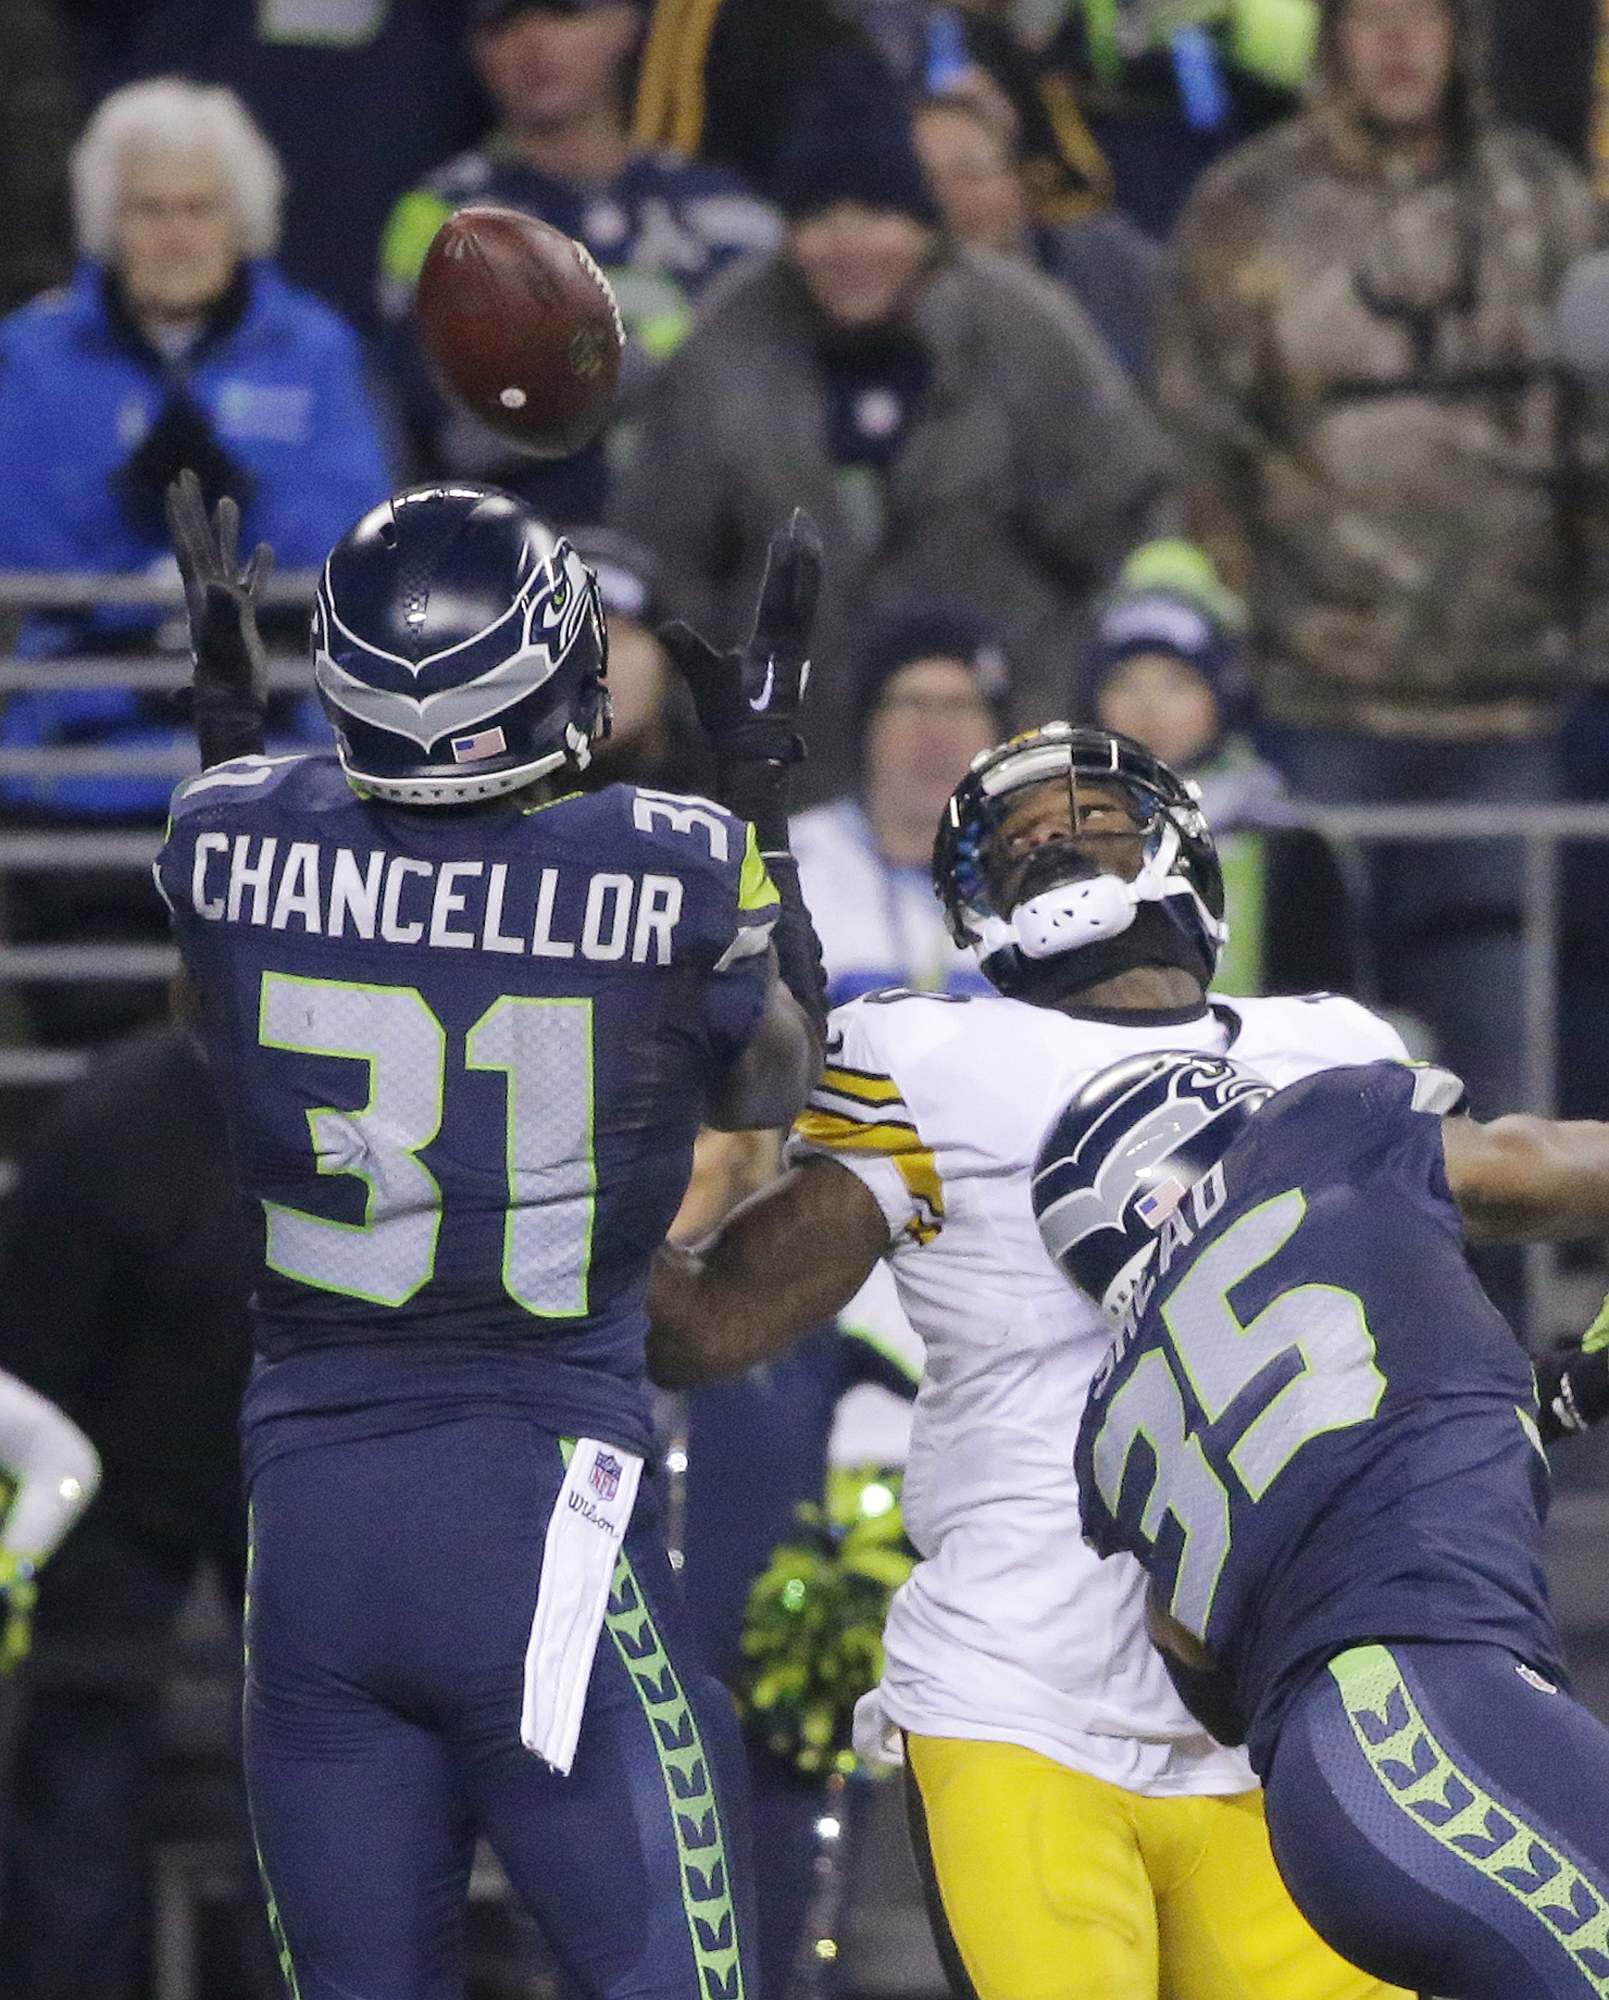 Seattle Seahawks' Kam Chancellor (31) reaches to intercept a pass meant for Pittsburgh Steelers' Martavis Bryant in the second half of an NFL football game, Sunday, Nov. 29, 2015, in Seattle. Seahawks' DeShawn Shead is at right. The Seahawks won 39-30. (A